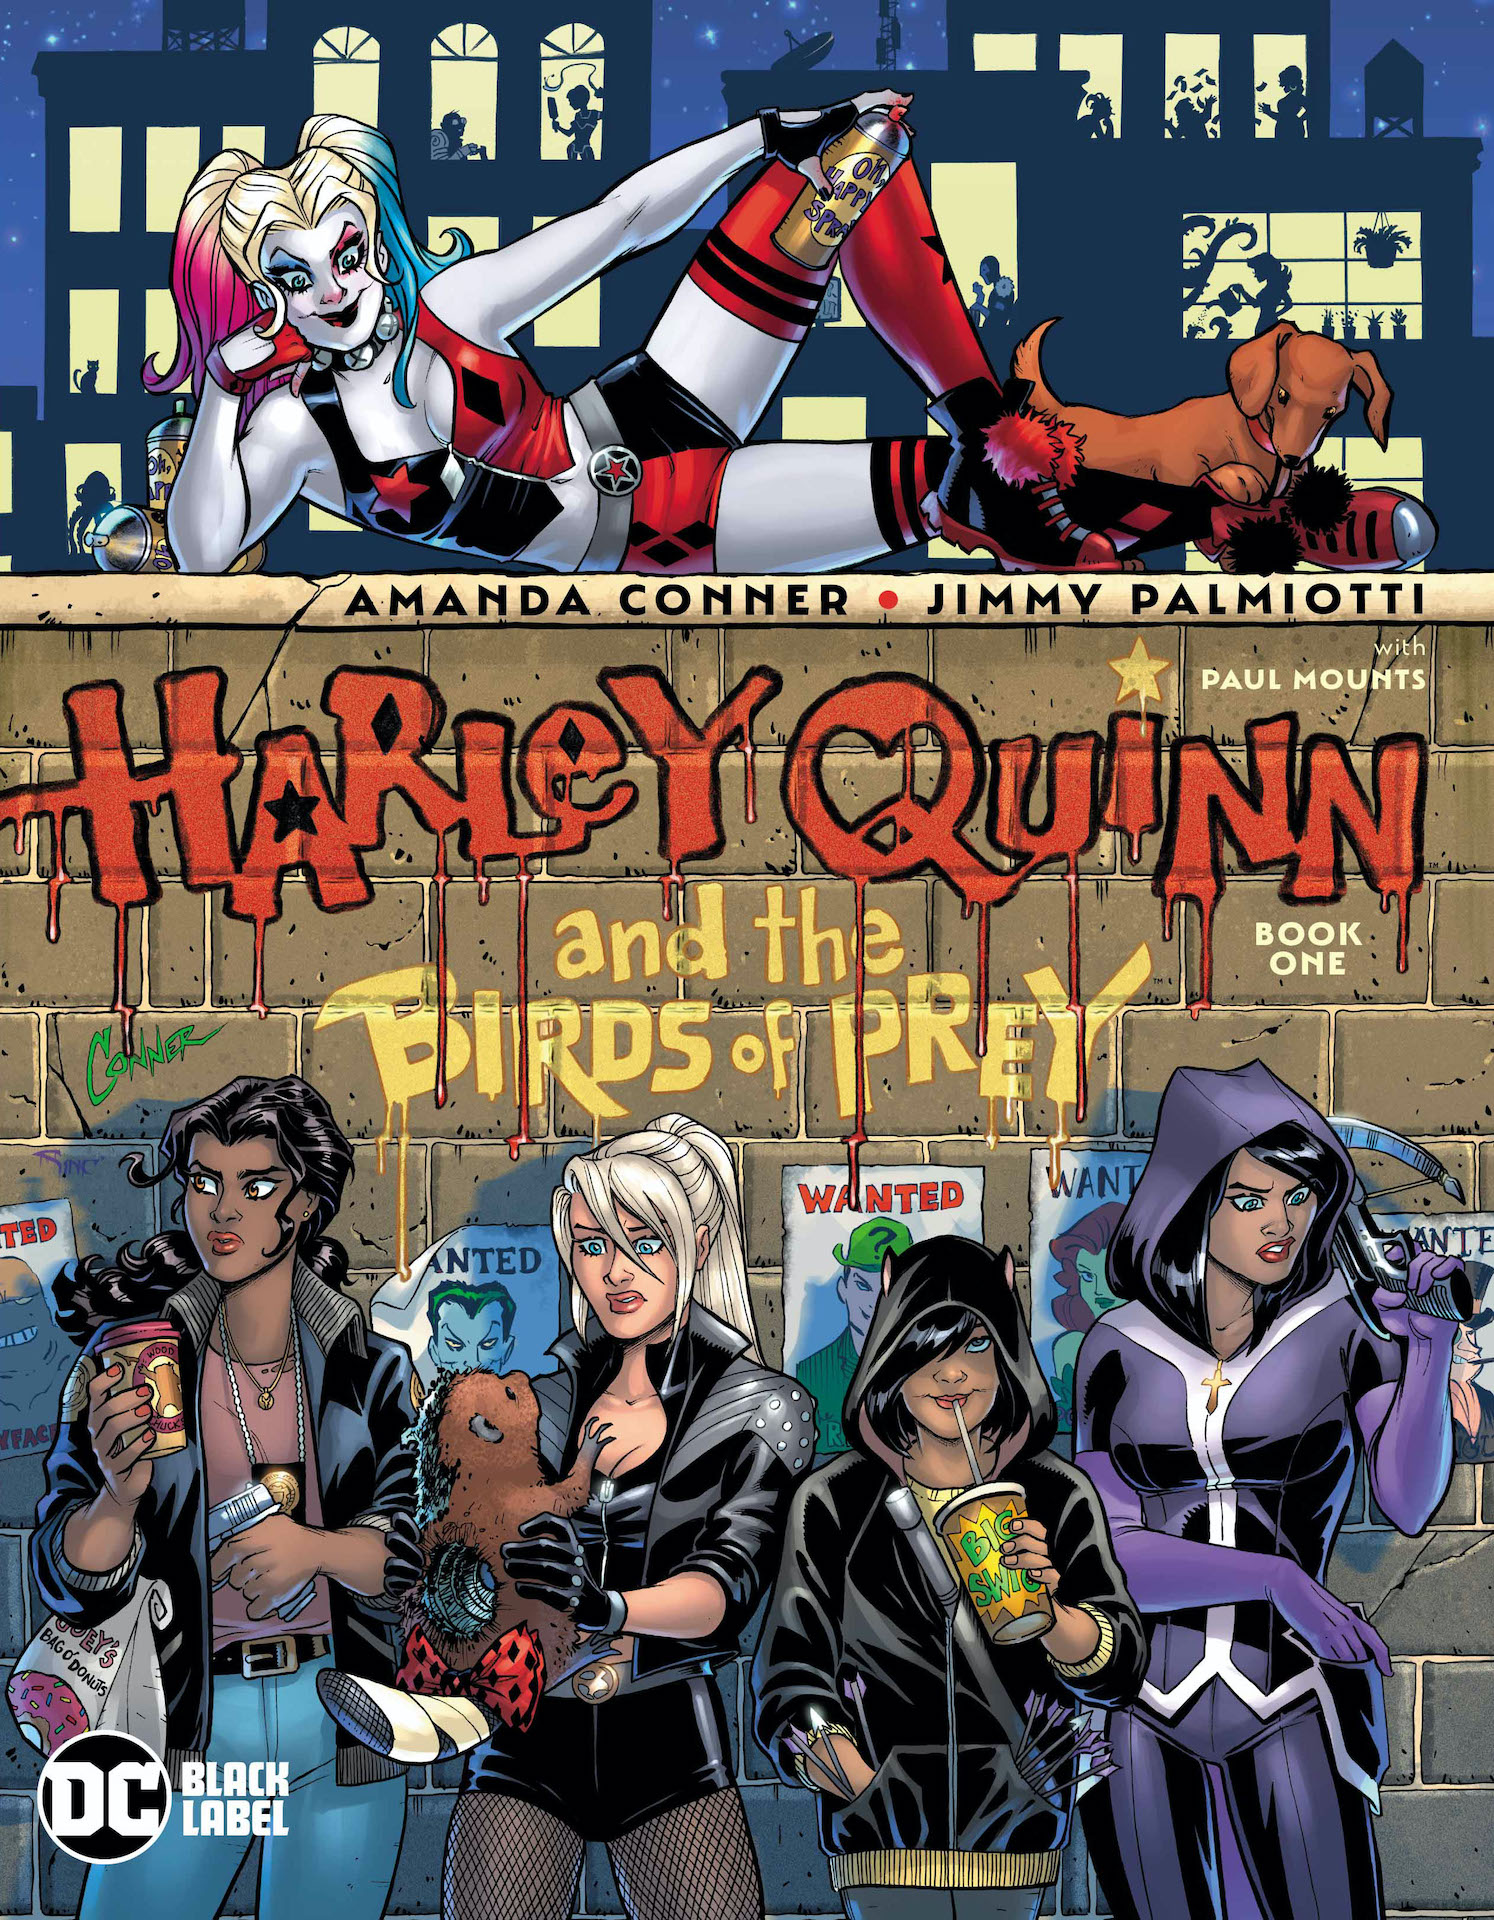 DC Preview: Harley Quinn & The Birds of Prey #1